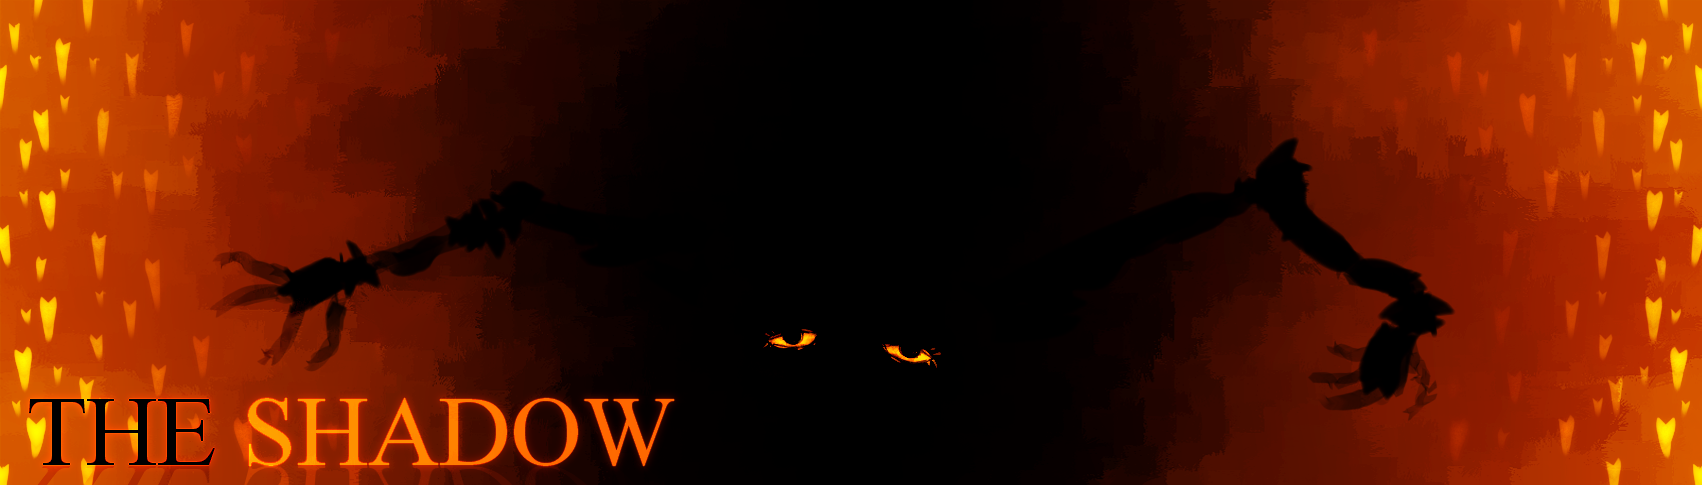 theshadow_illust.png